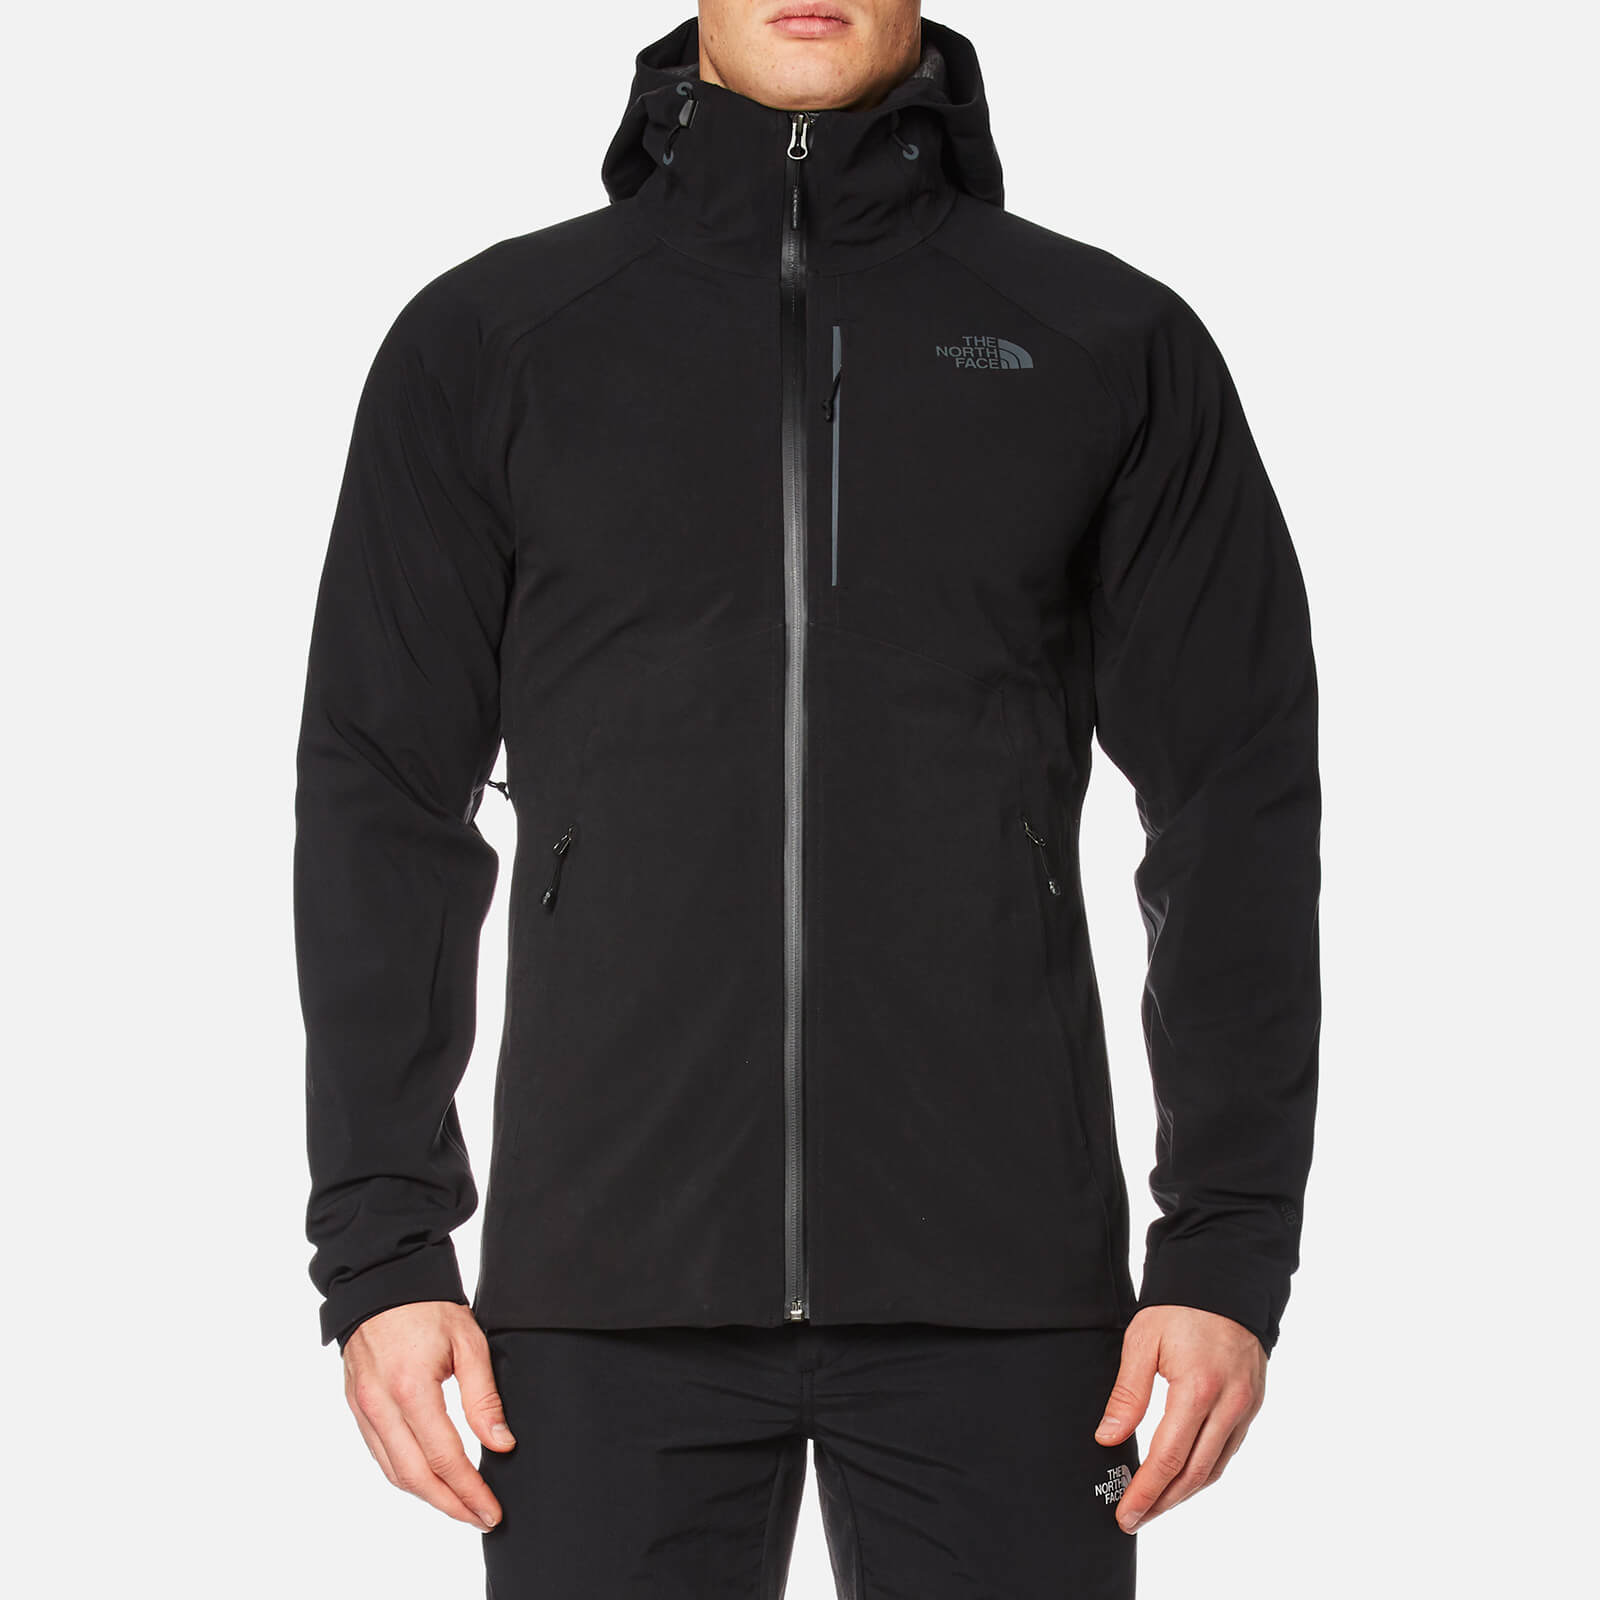 badd8c8ed The North Face Men's Apex Flex GTX Jacket - TNF Black